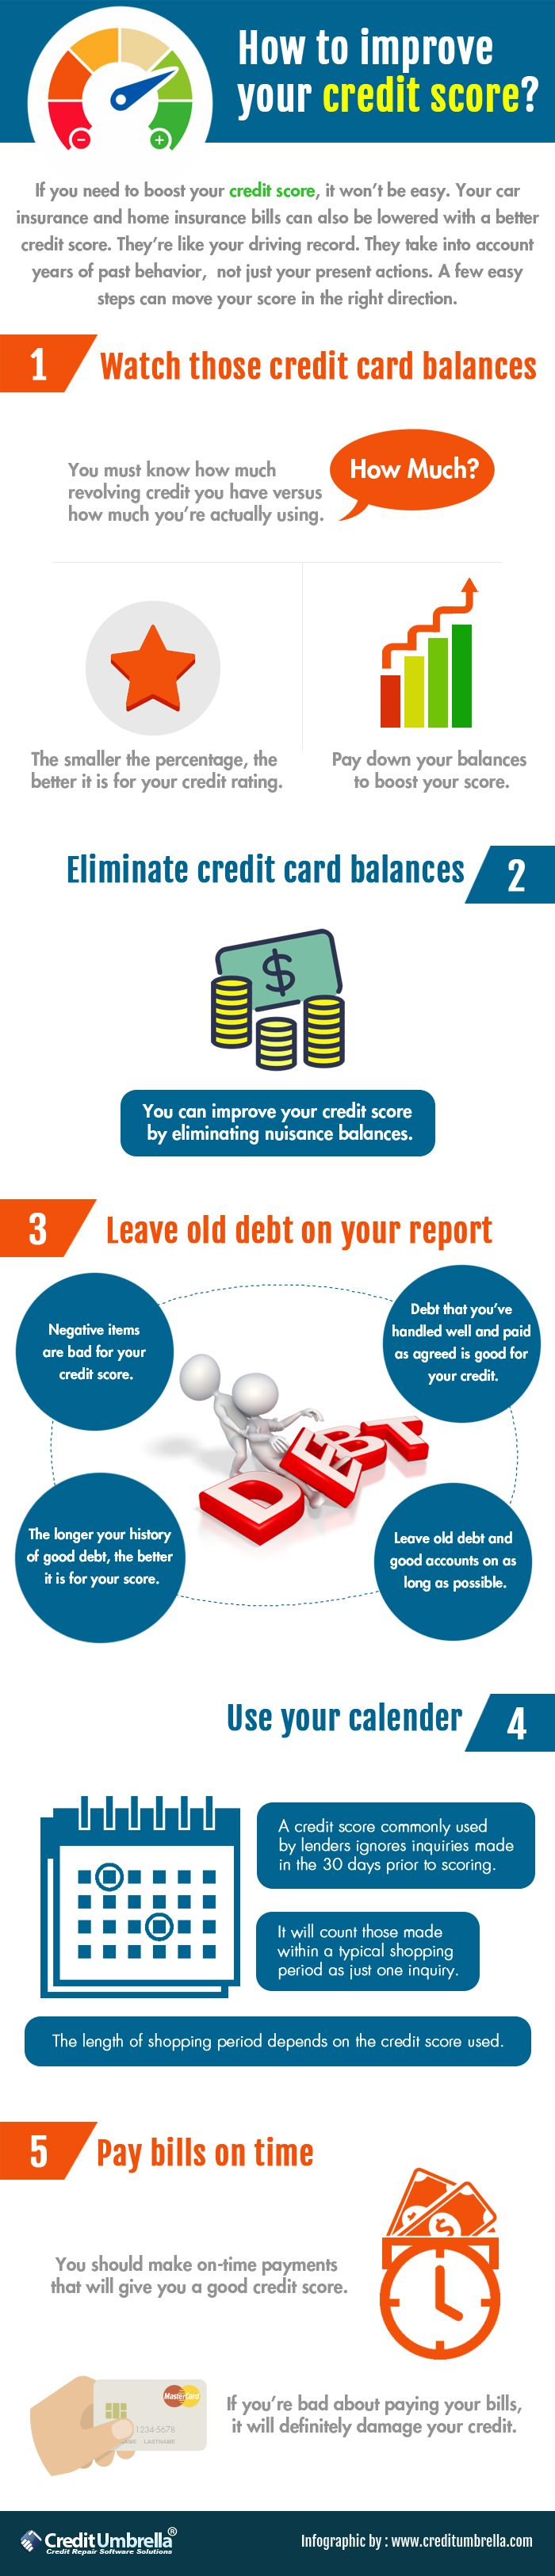 Improving Your Credit Score Is Extremely Essential Certain Tips Should  Always Be Kept In Mind